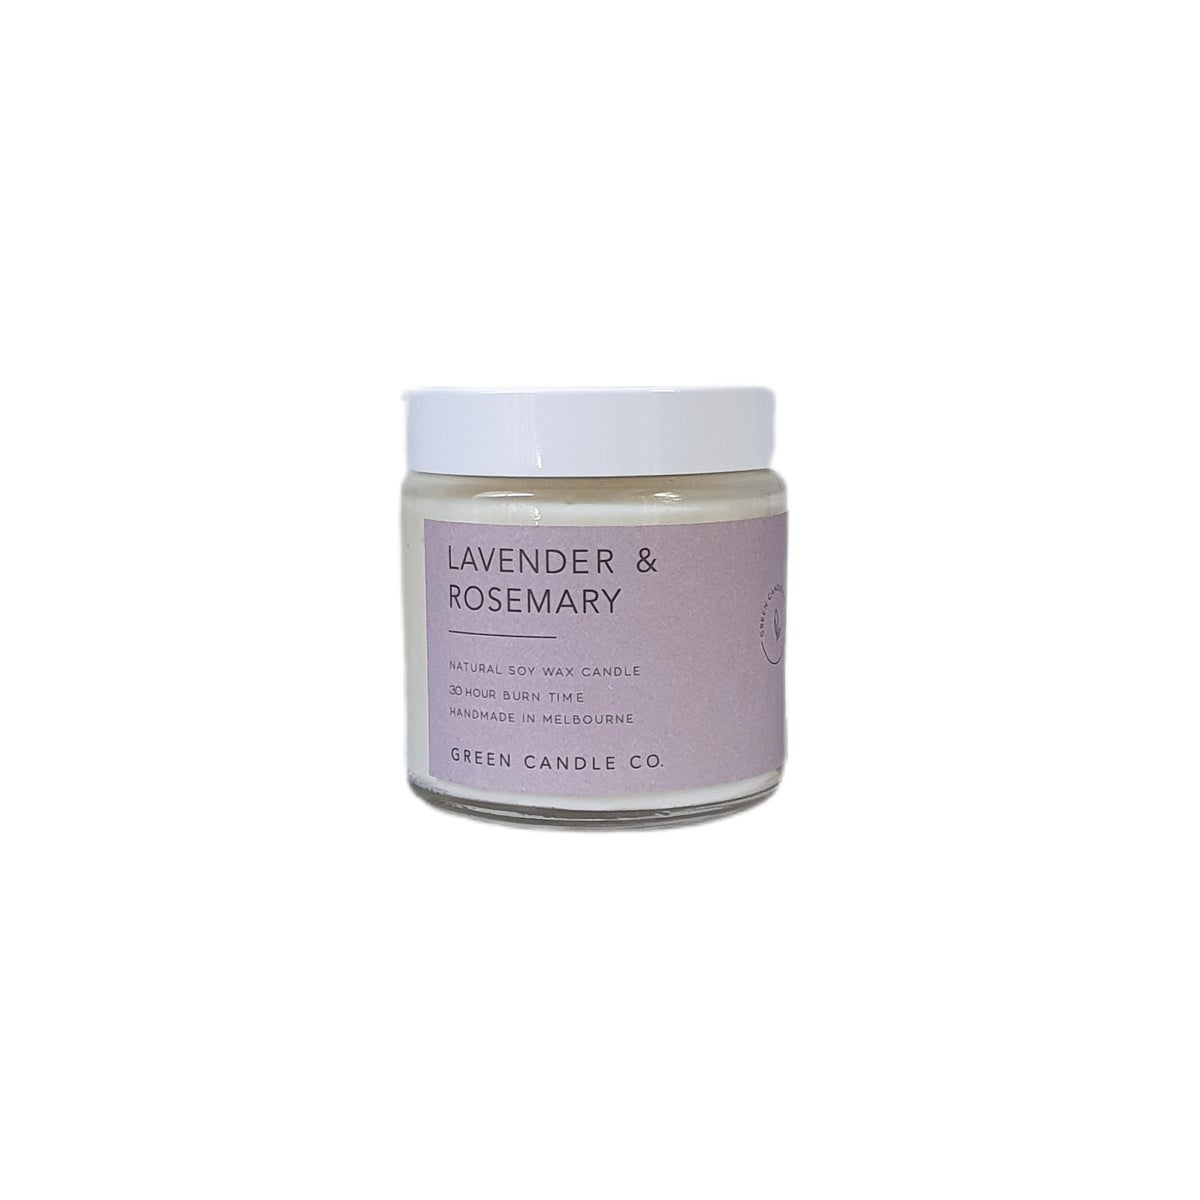 Image of LAVENDER & ROSEMARY Candle / Small